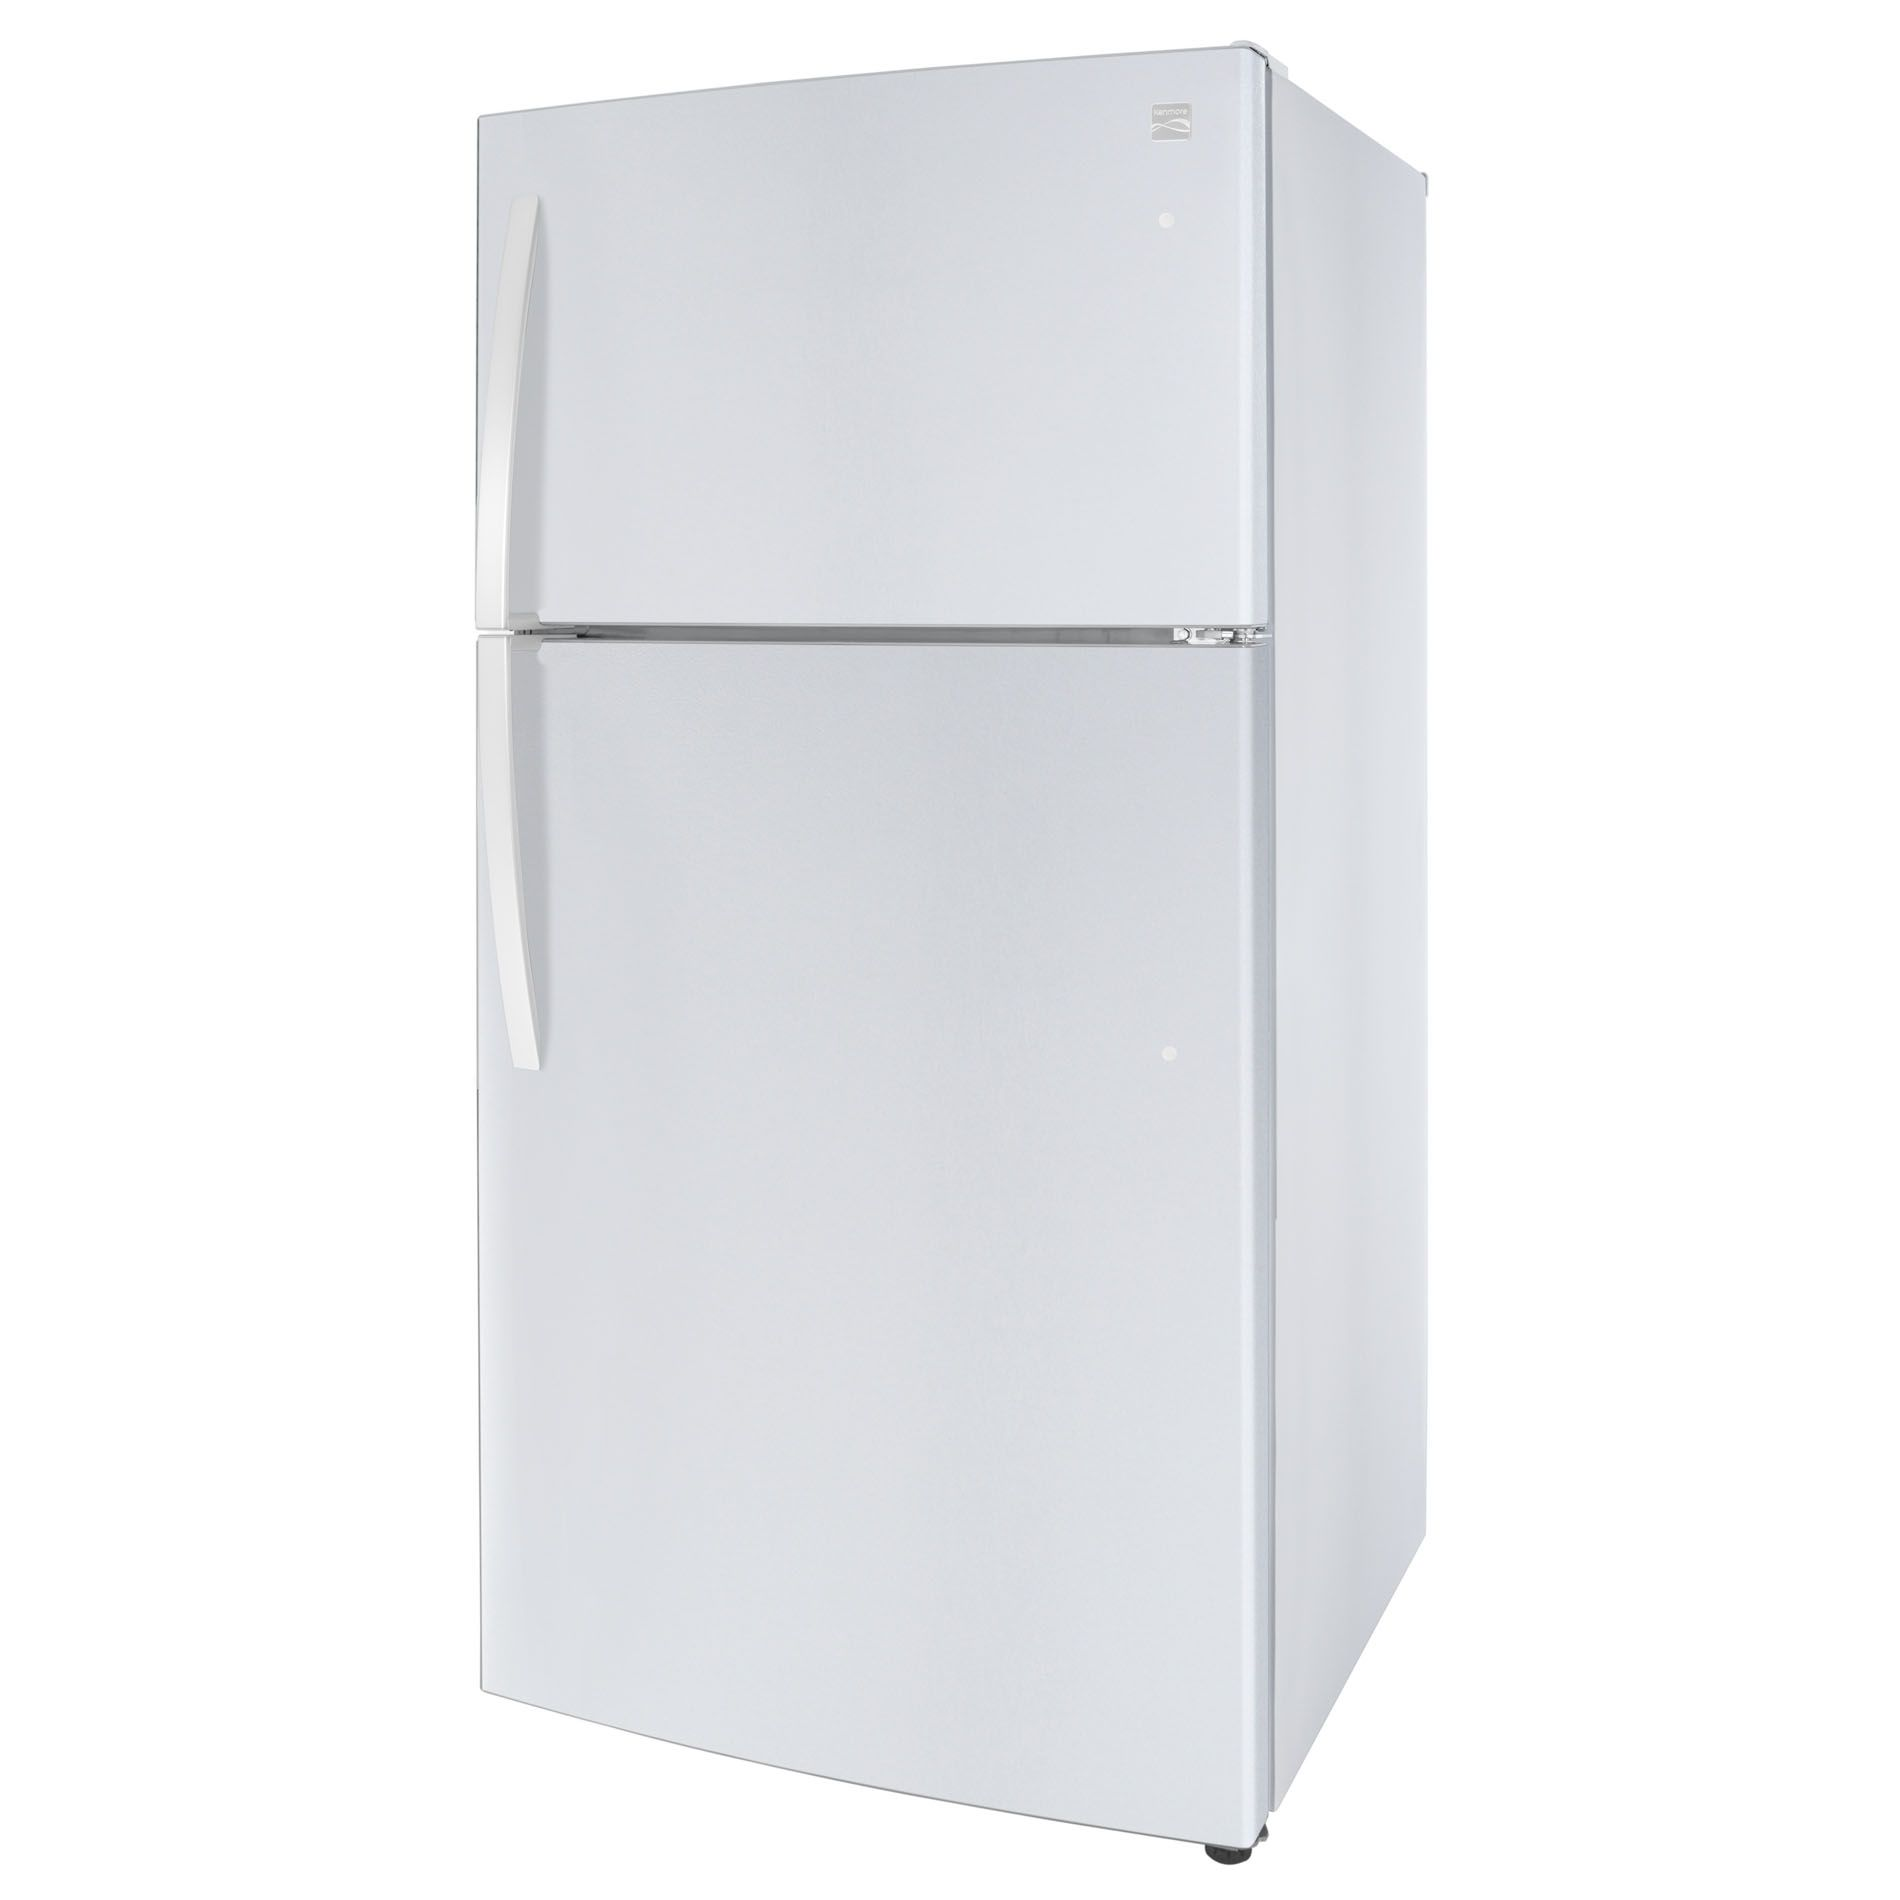 Kenmore 78032 23.8 cu. ft. Top-Freezer Refrigerator w/ Icemaker- White